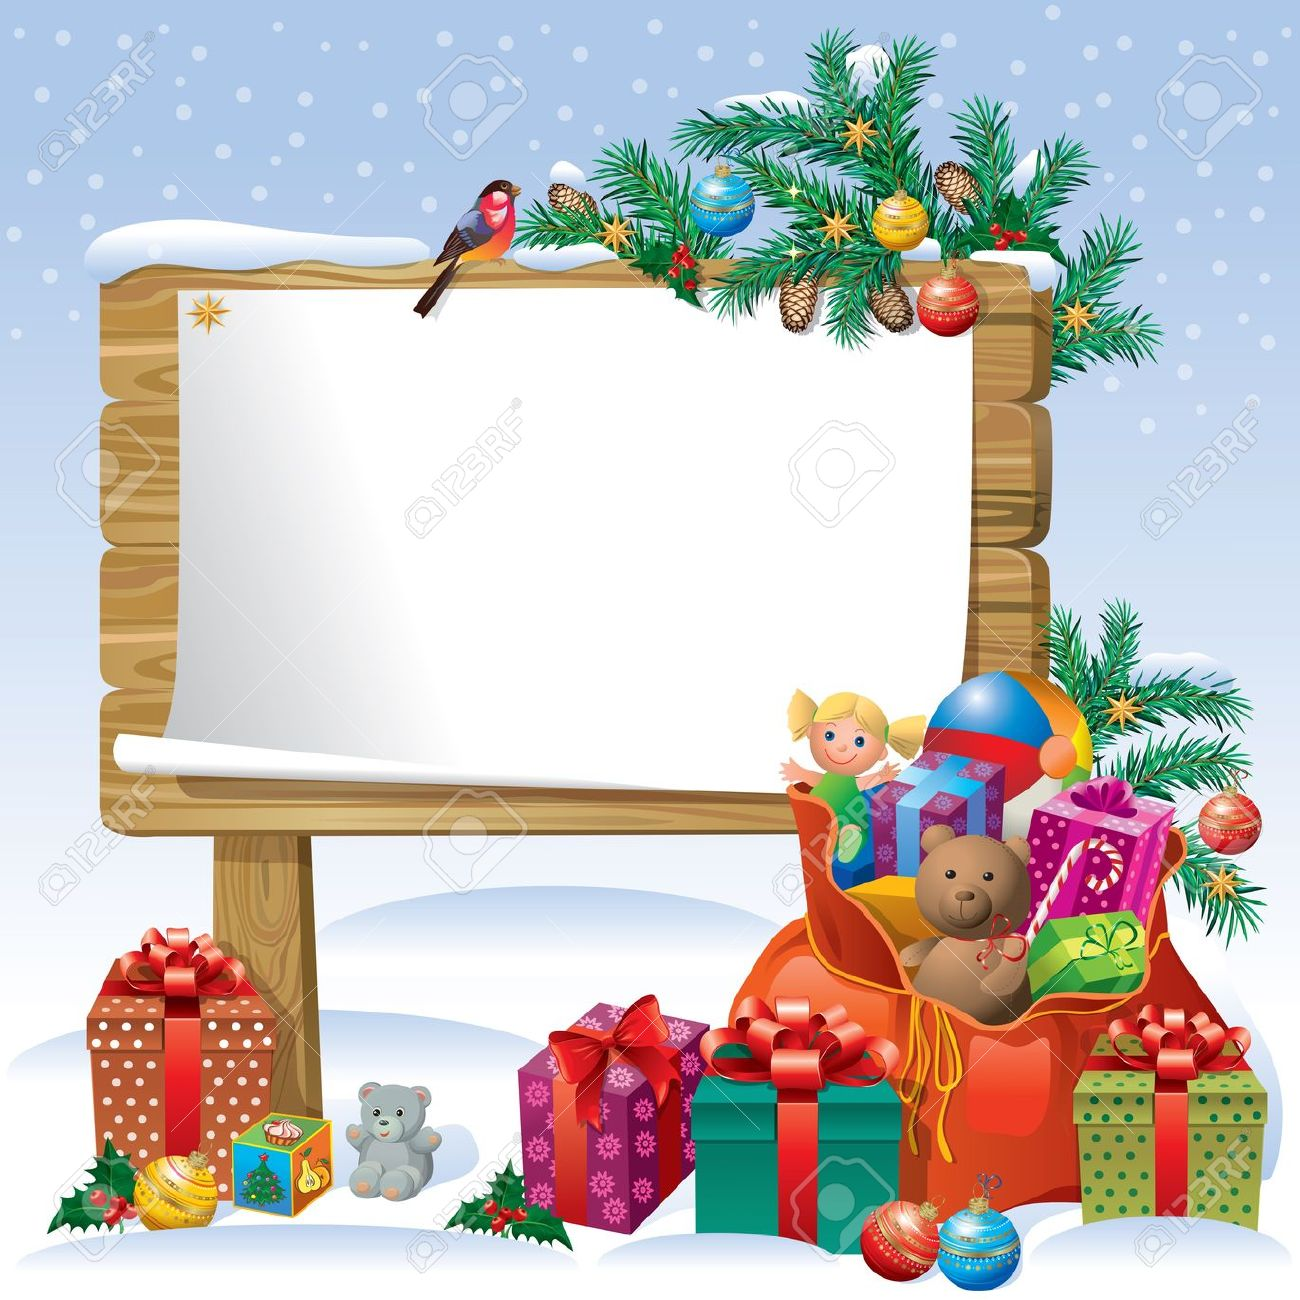 Christmas Toys Border : Christmas presents clipart bord clipground